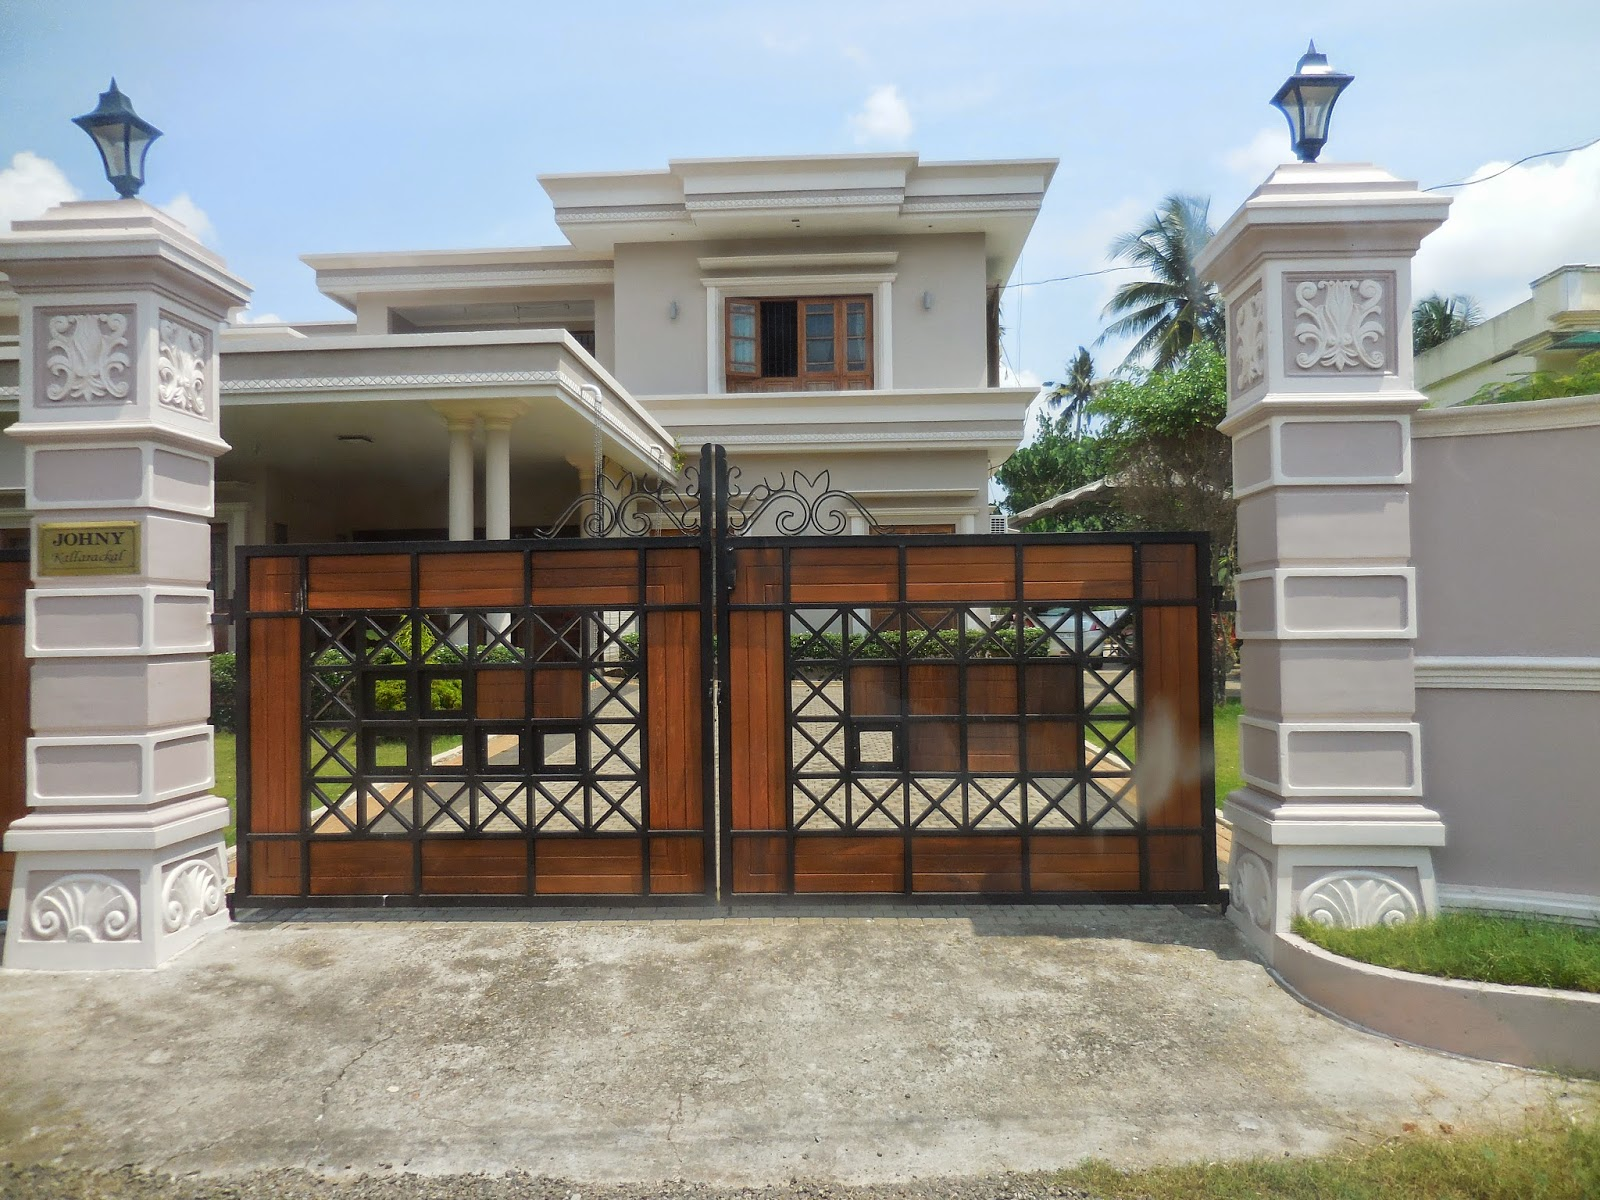 Kerala Gate Designs: A beautiful house gate from Kerala